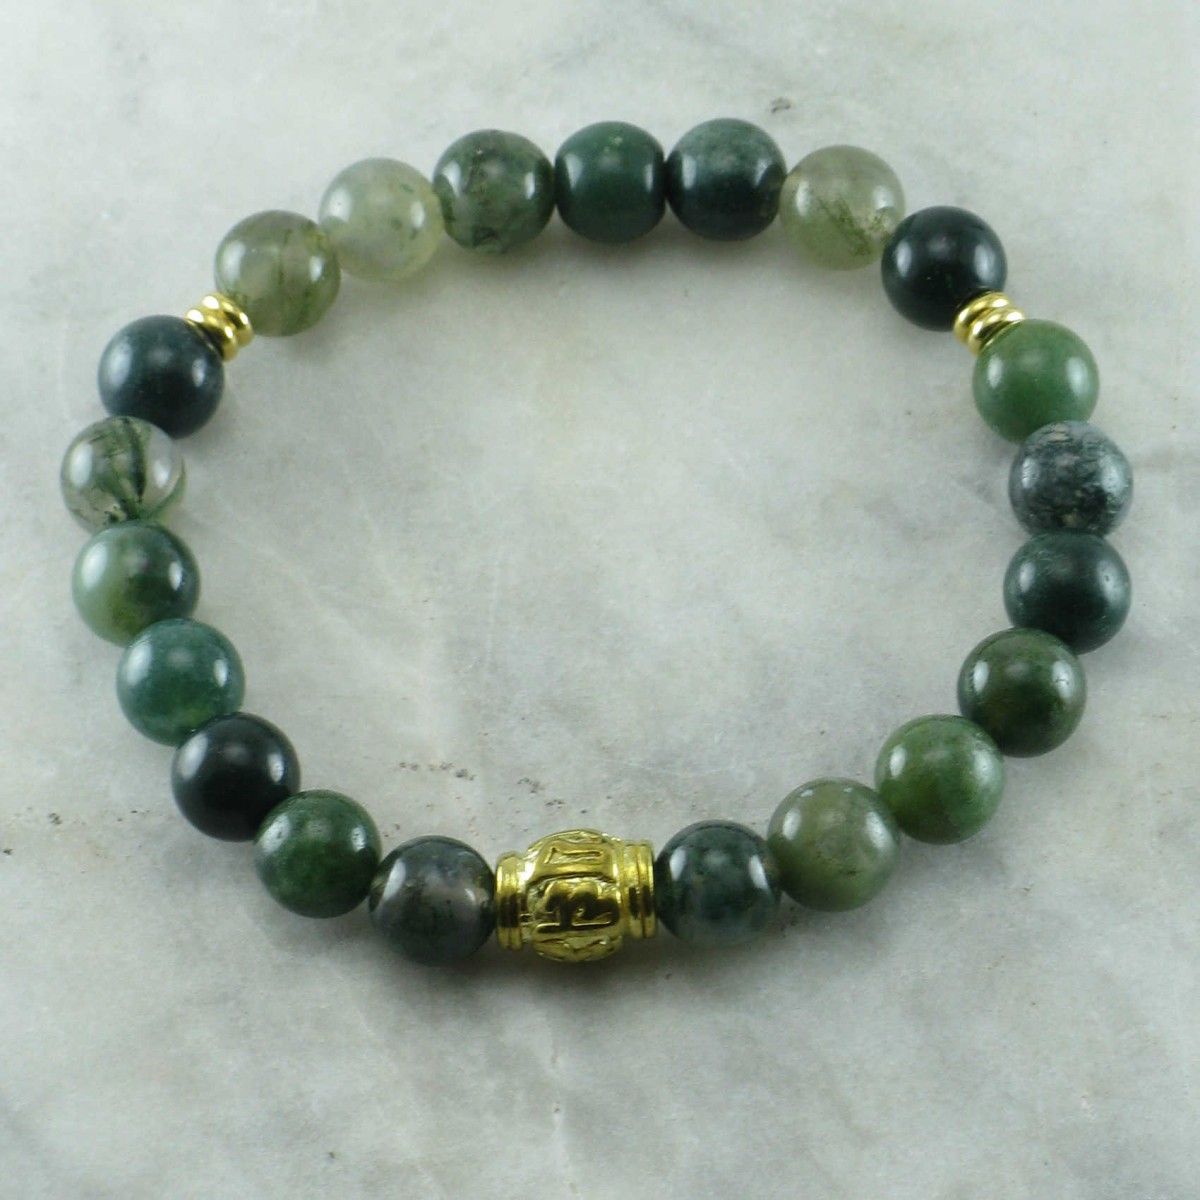 Fortune_Mala_Bracelet_21_Moss_Agate_Mala_Beads_OM_Mani_Padme_Hum_Ayurvedic_Vata